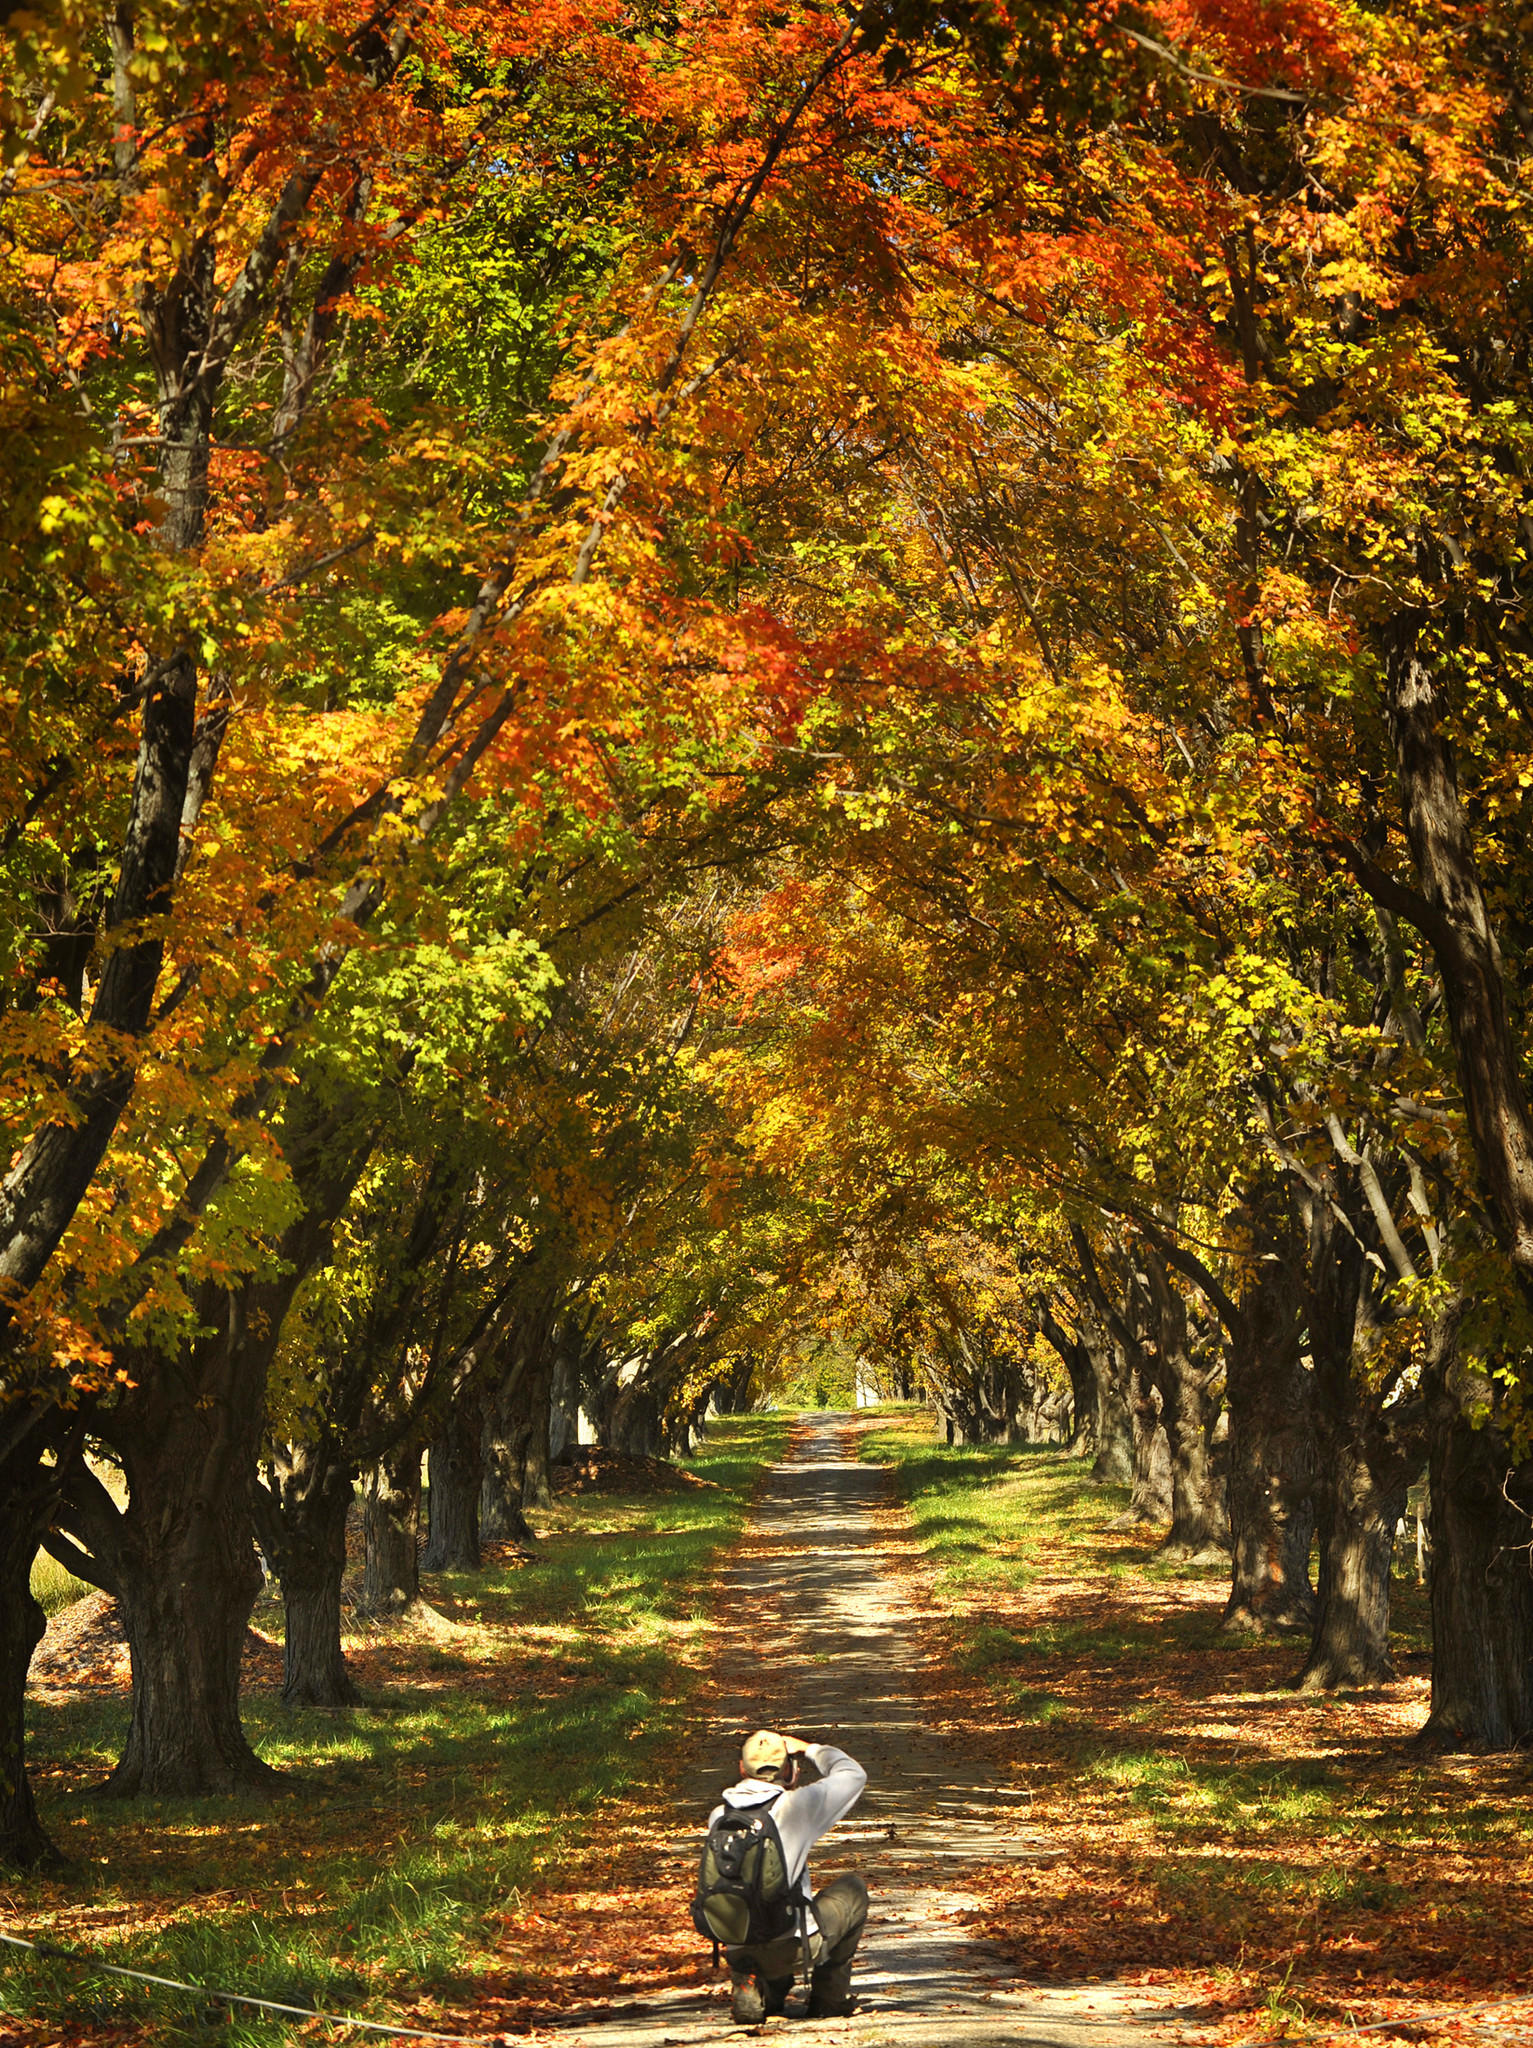 Christopher Walls of Owings Mills was returning from a trip into Pennsylvania for photograph fall colors when he found this arbor of trees on Shawan Road, at the site of Baltimore County's future Agricultural Center.